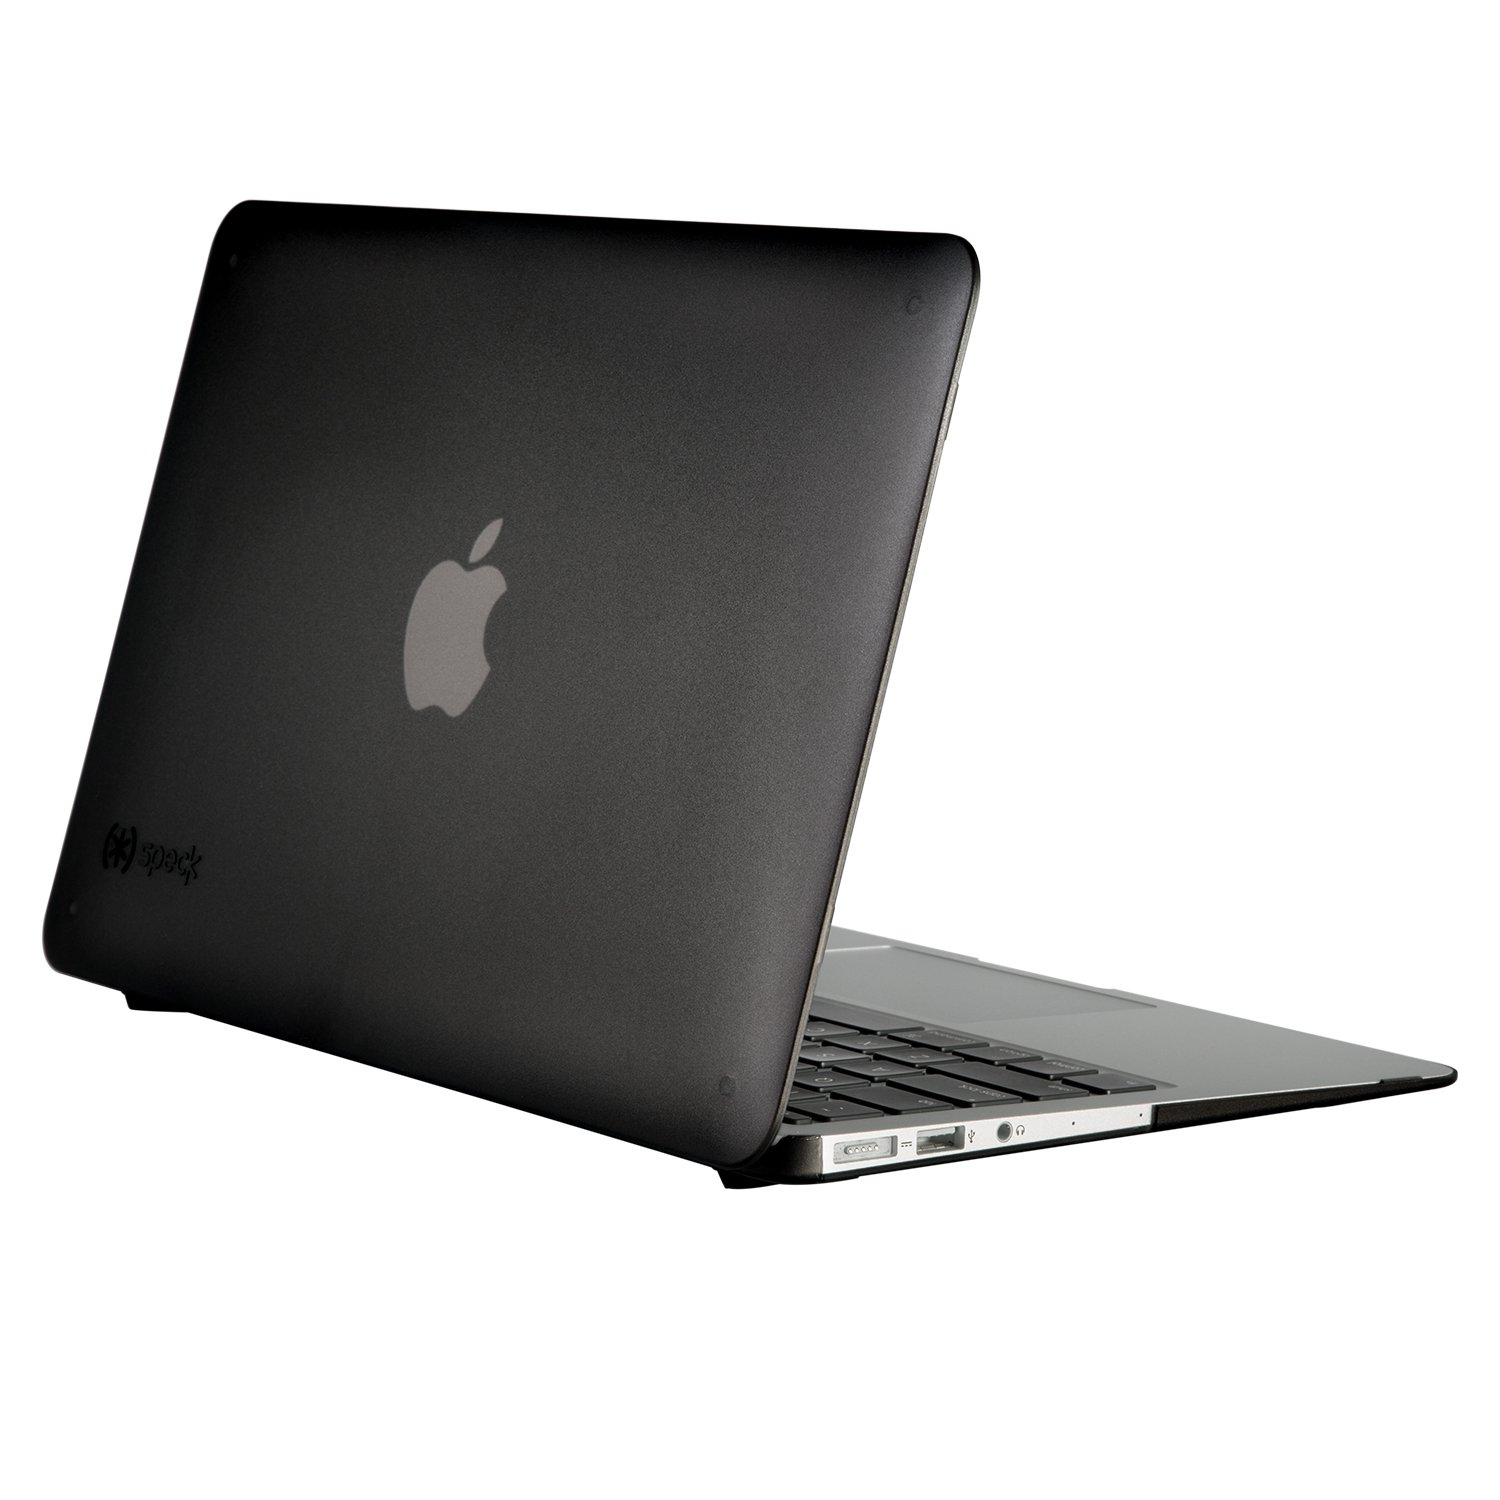 Speck Products See Thru Onyx Case for Macbook Air 13 Inch, Black Matte - 71478-0581 by Speck (Image #1)